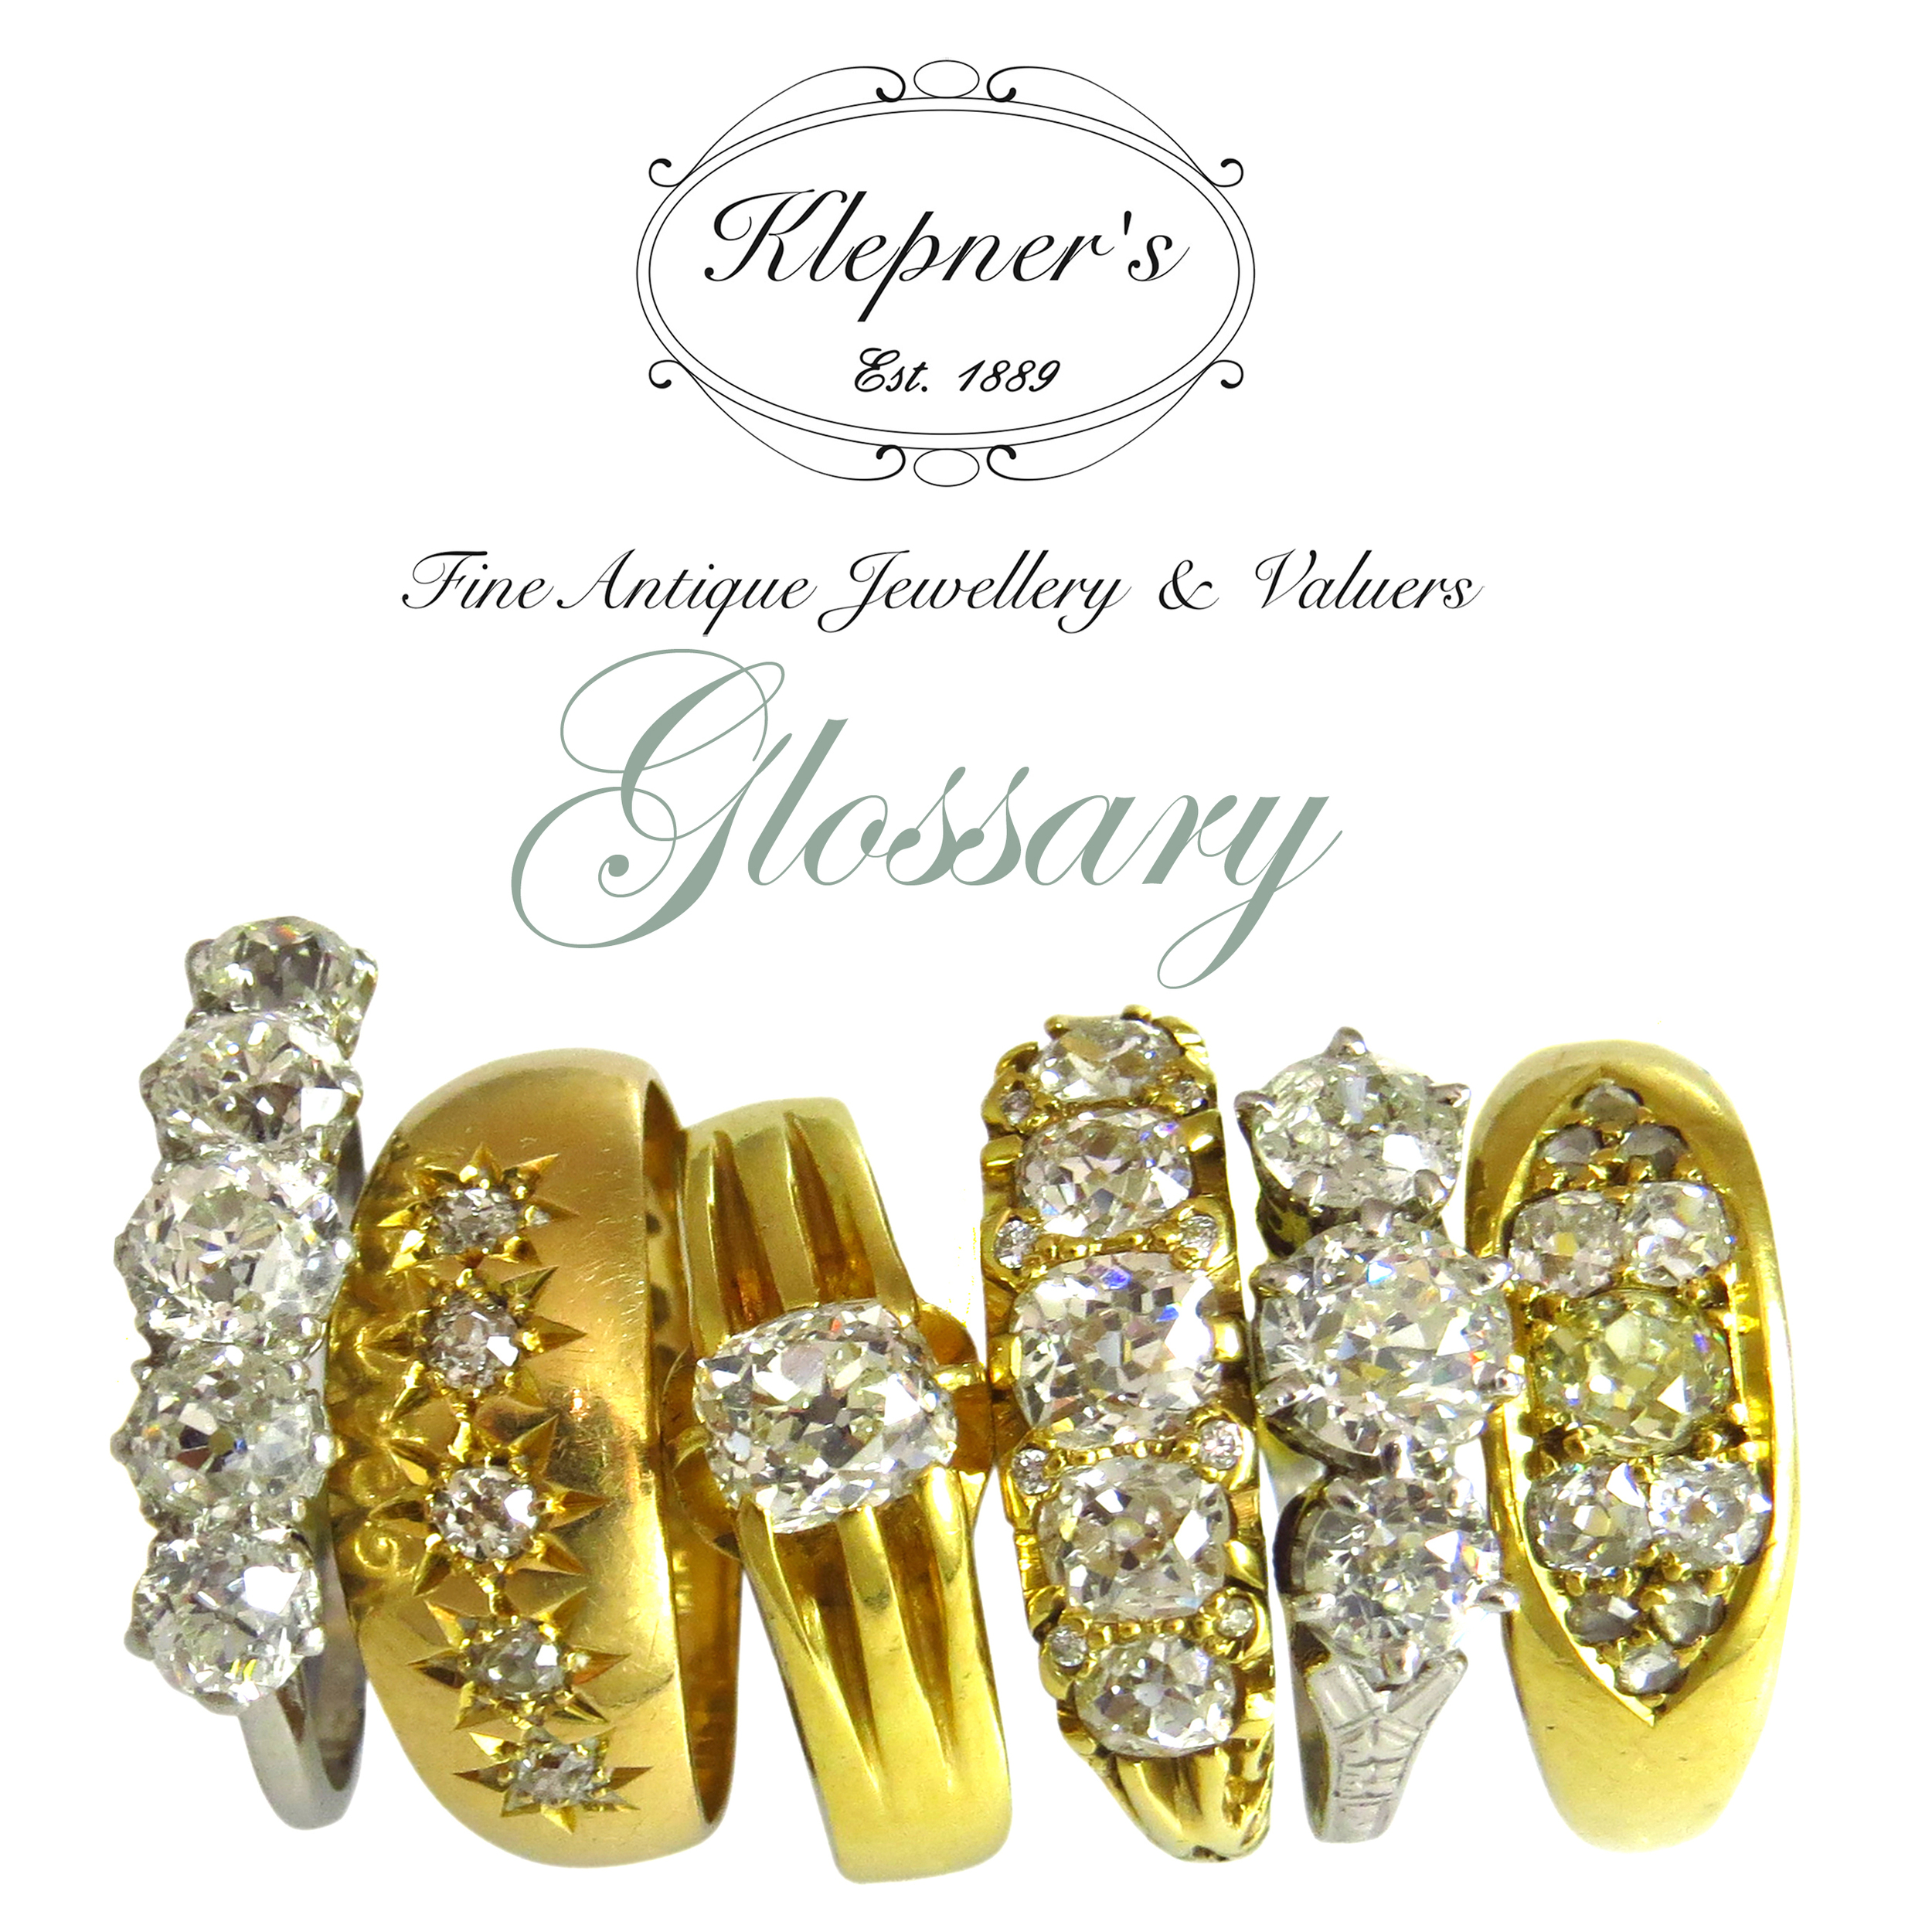 A useful guide to help you understand jewellery terminology